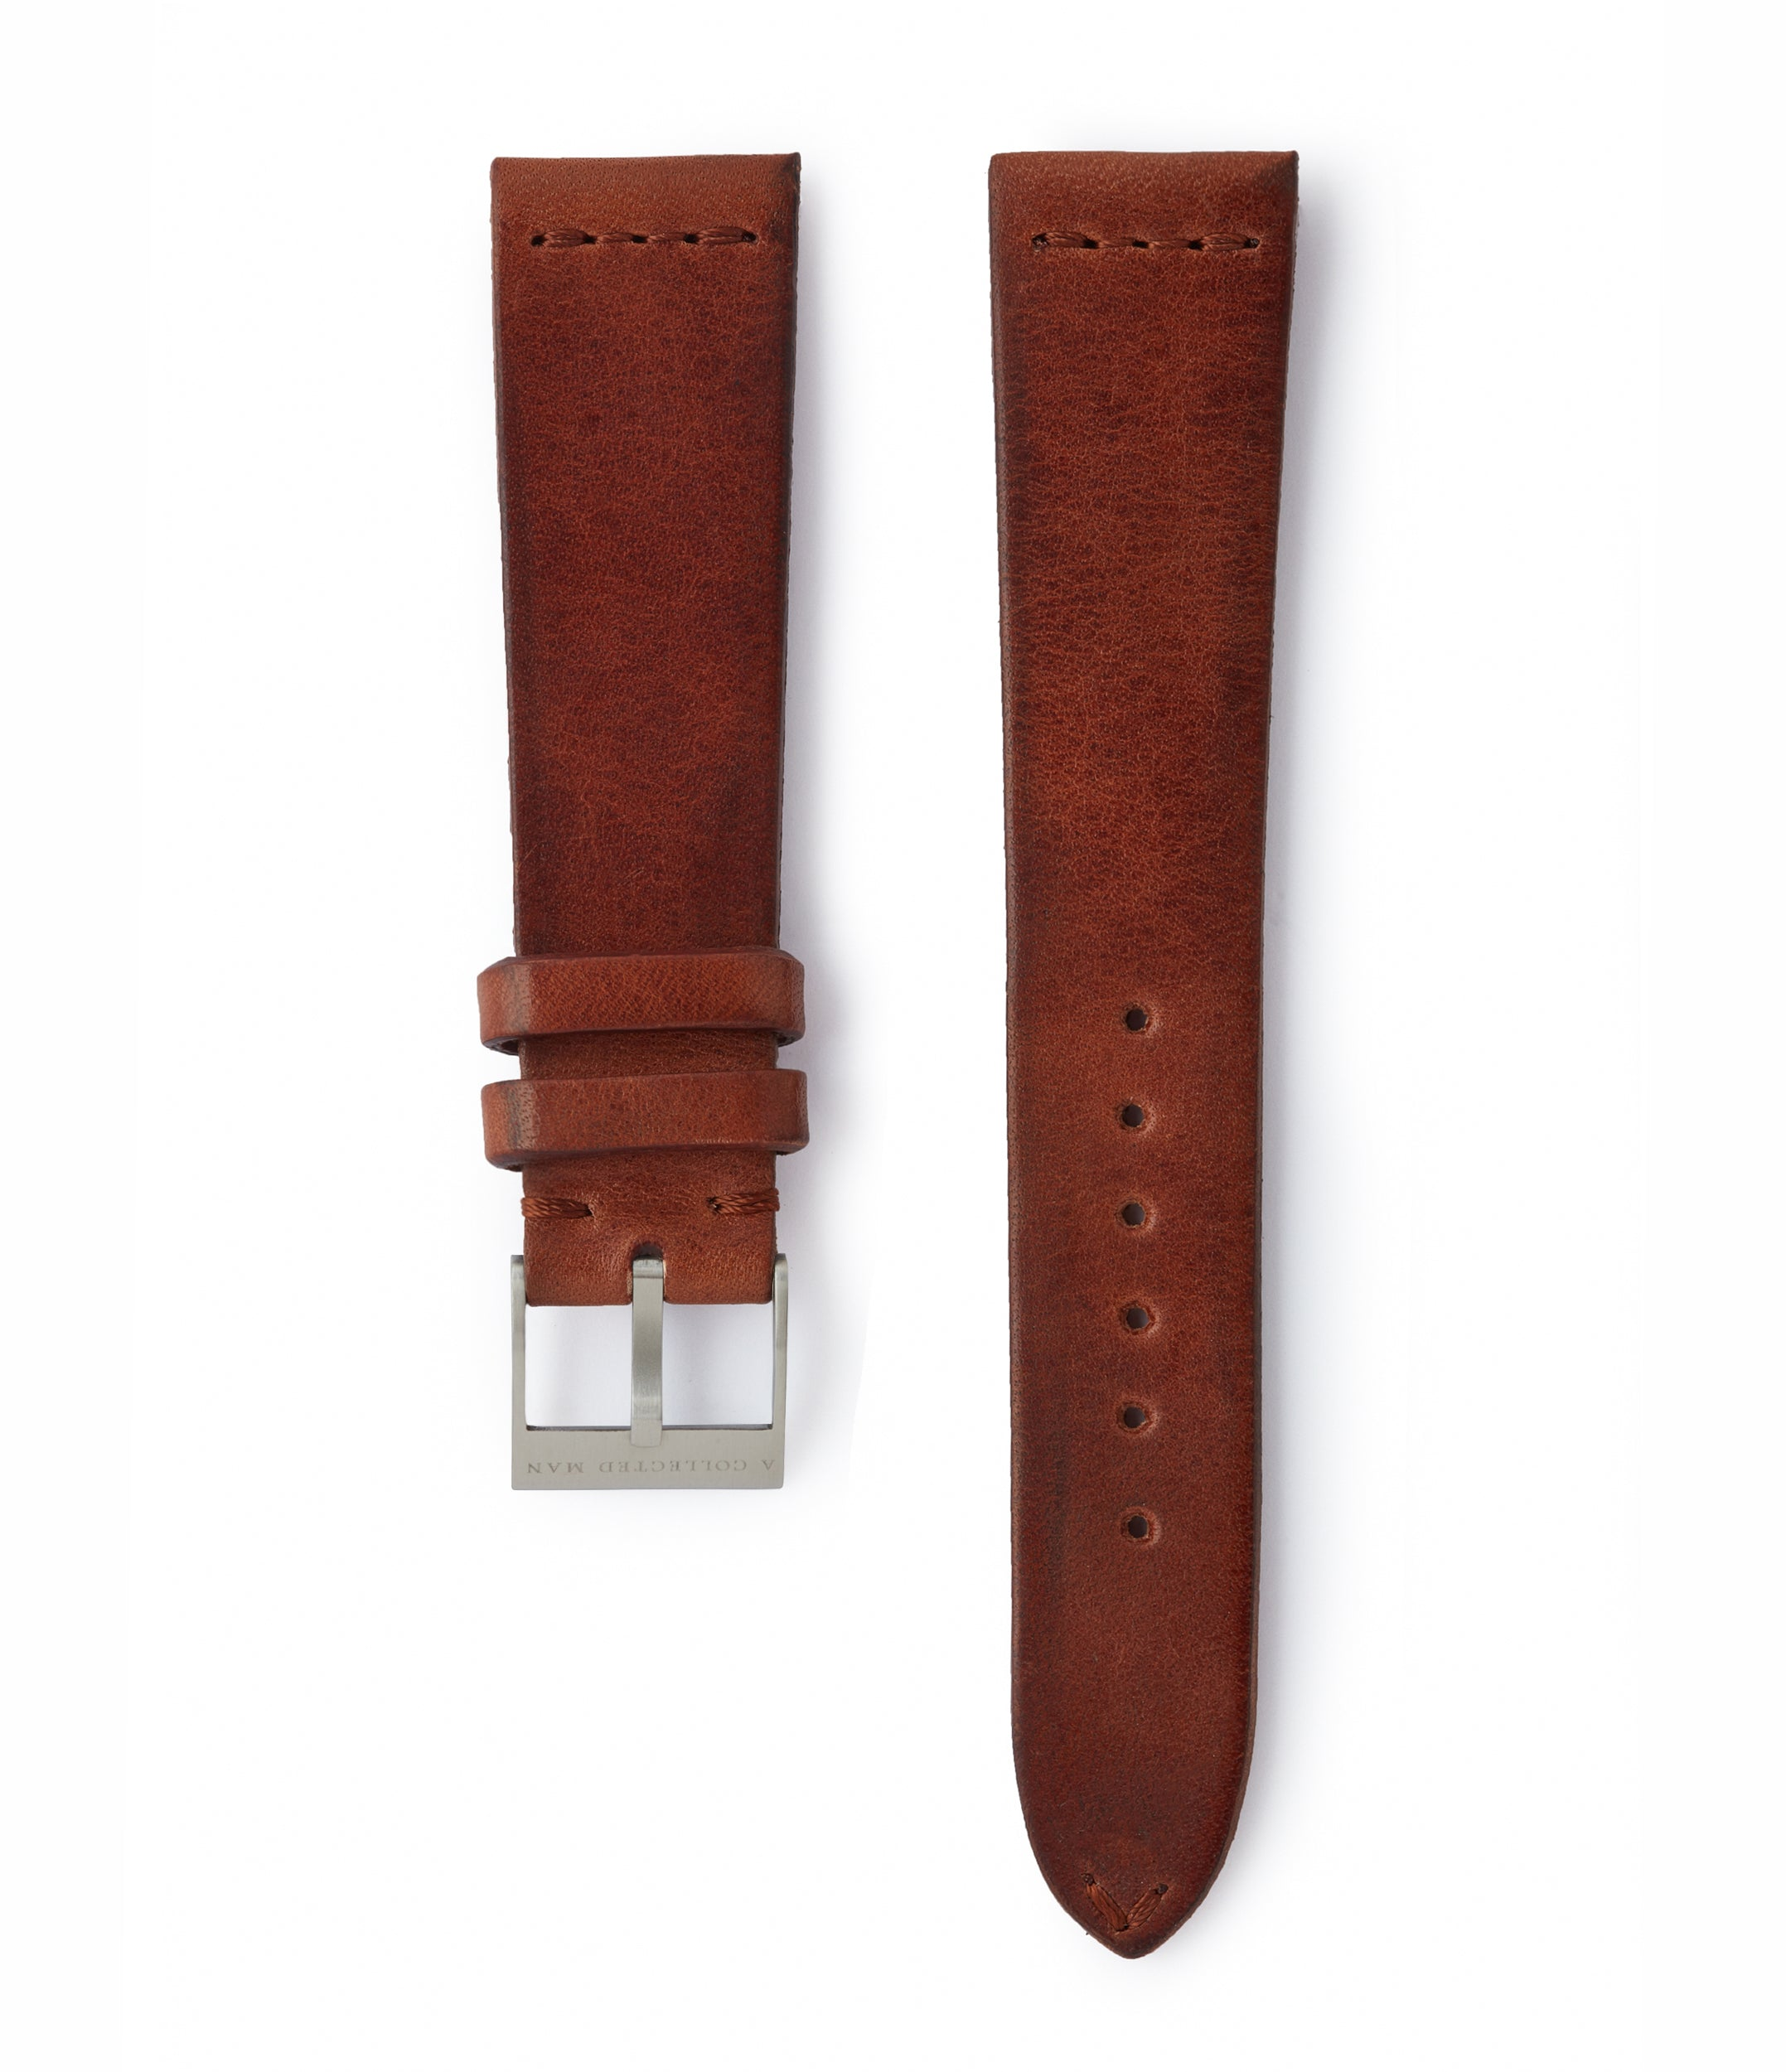 buy dark brown vintage leather watch strap 20mm Amalfi JPM for sale order online at A Collected Man London